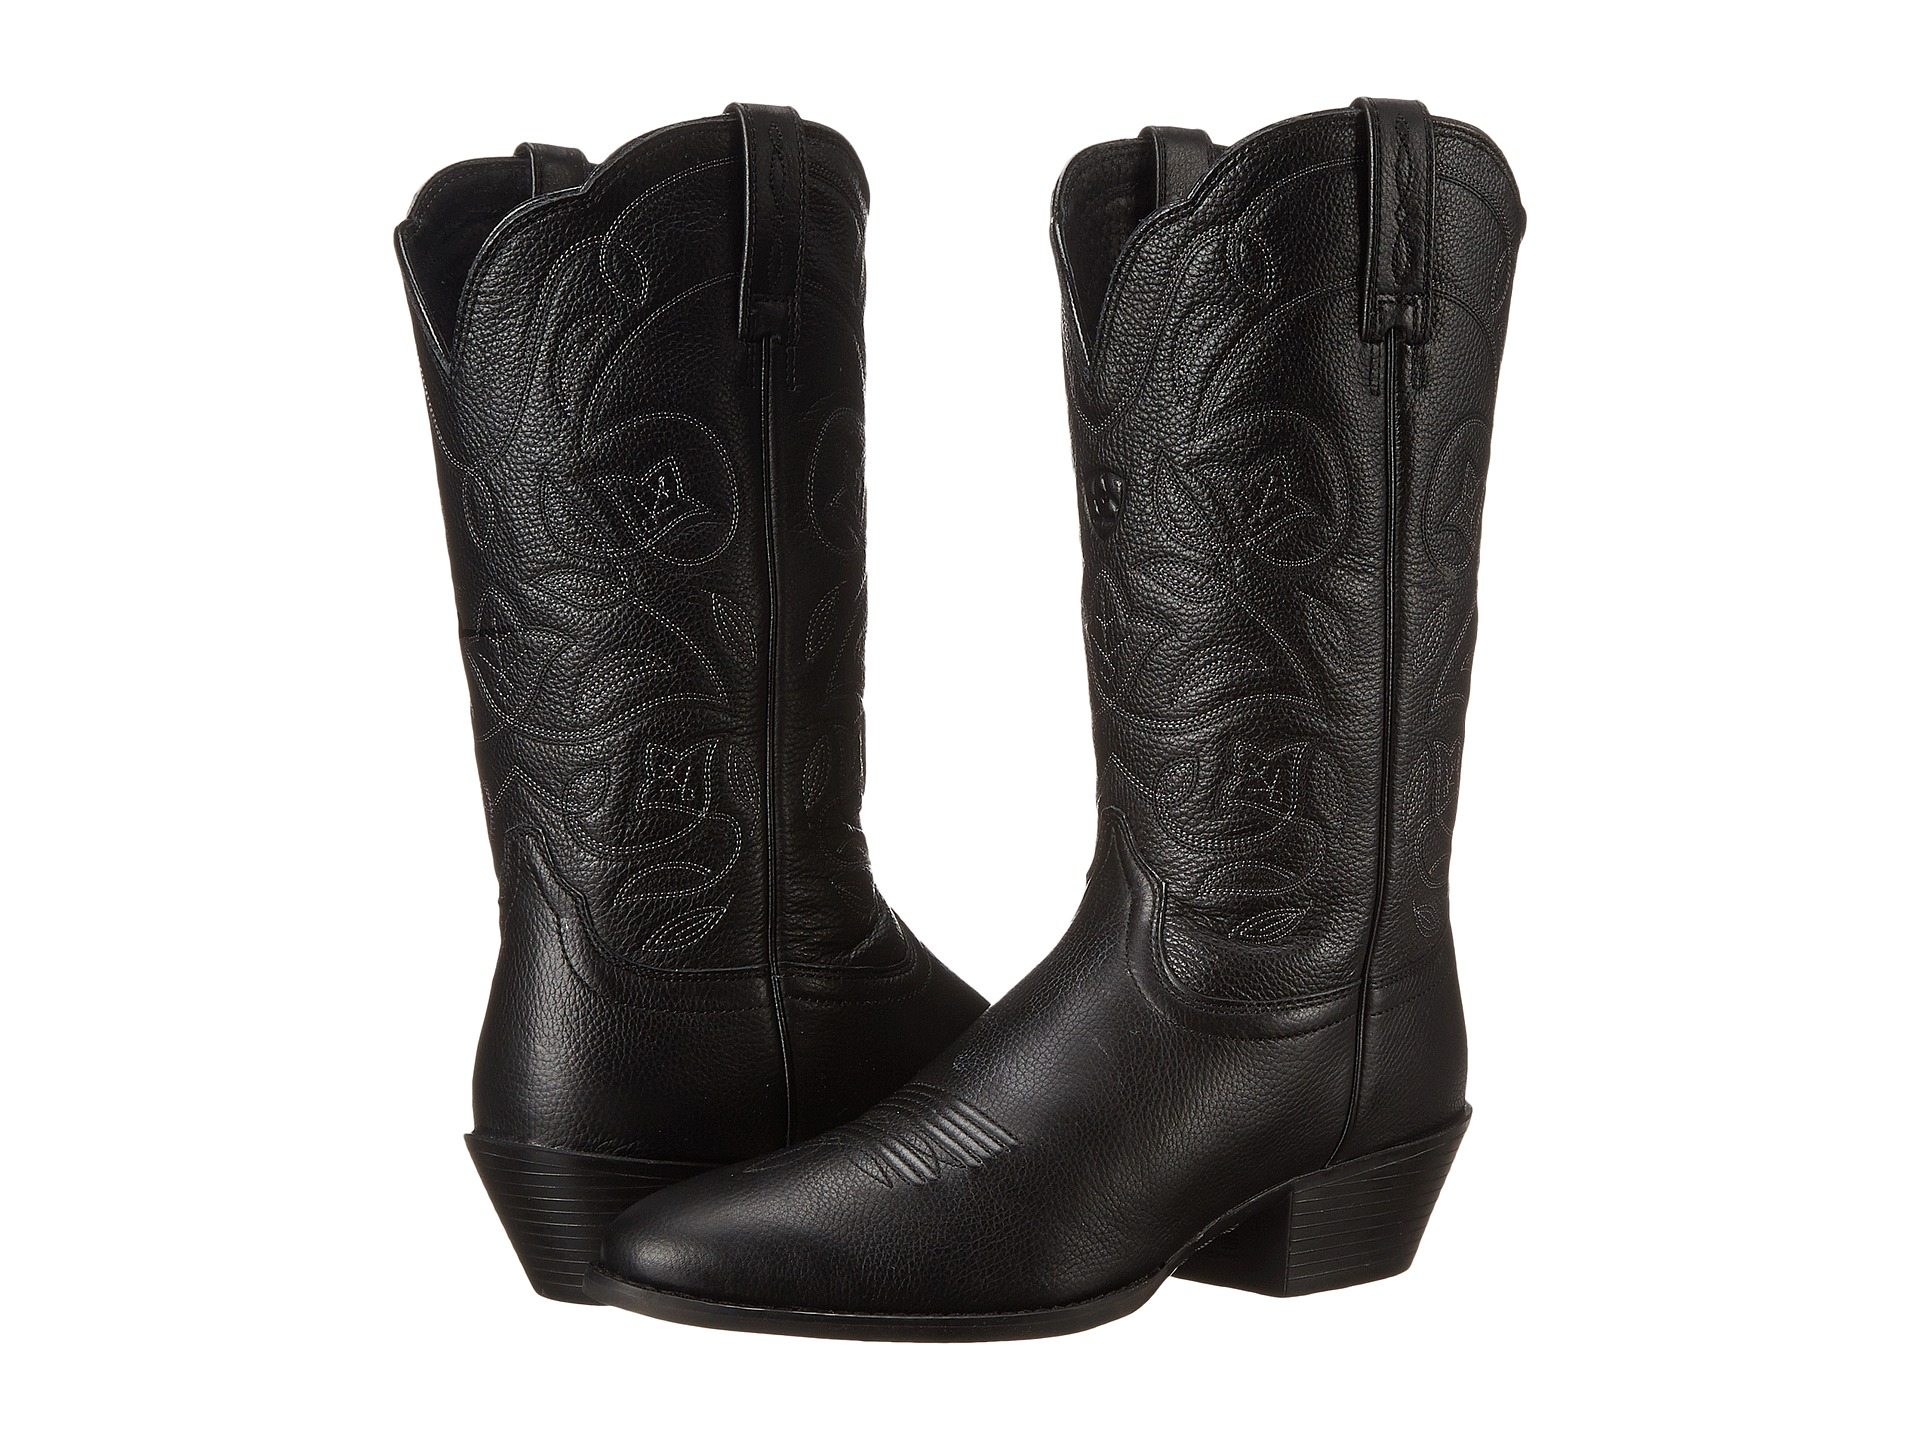 Ariat Heritage Western R-toe - Zappos.com Free Shipping BOTH Ways